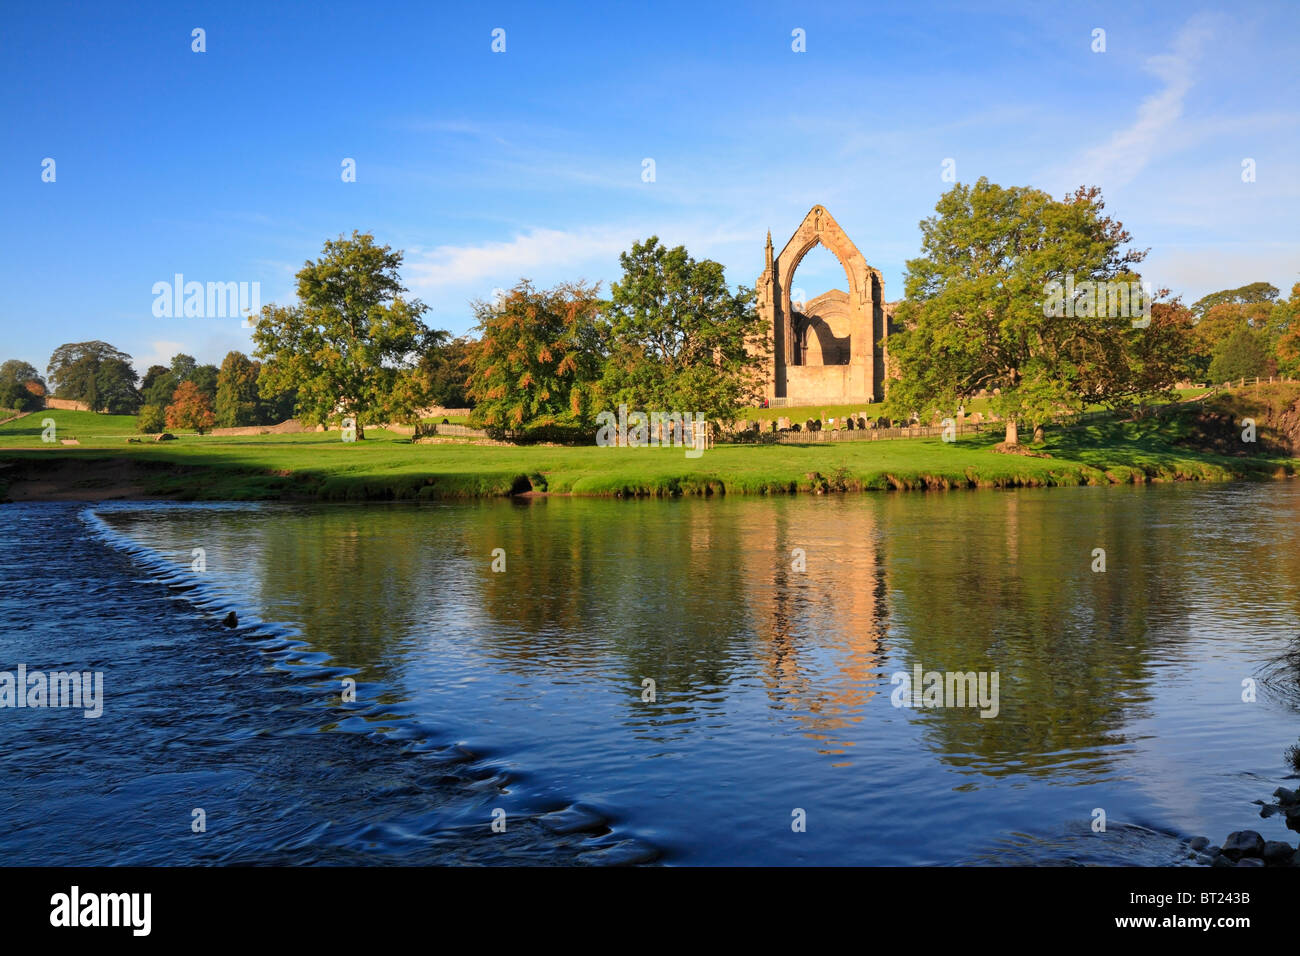 Bolton Priory and Stepping Stones, River Wharfe, Bolton Abbey, Yorkshire Dales National Park, North Yorkshire, England, Stock Photo